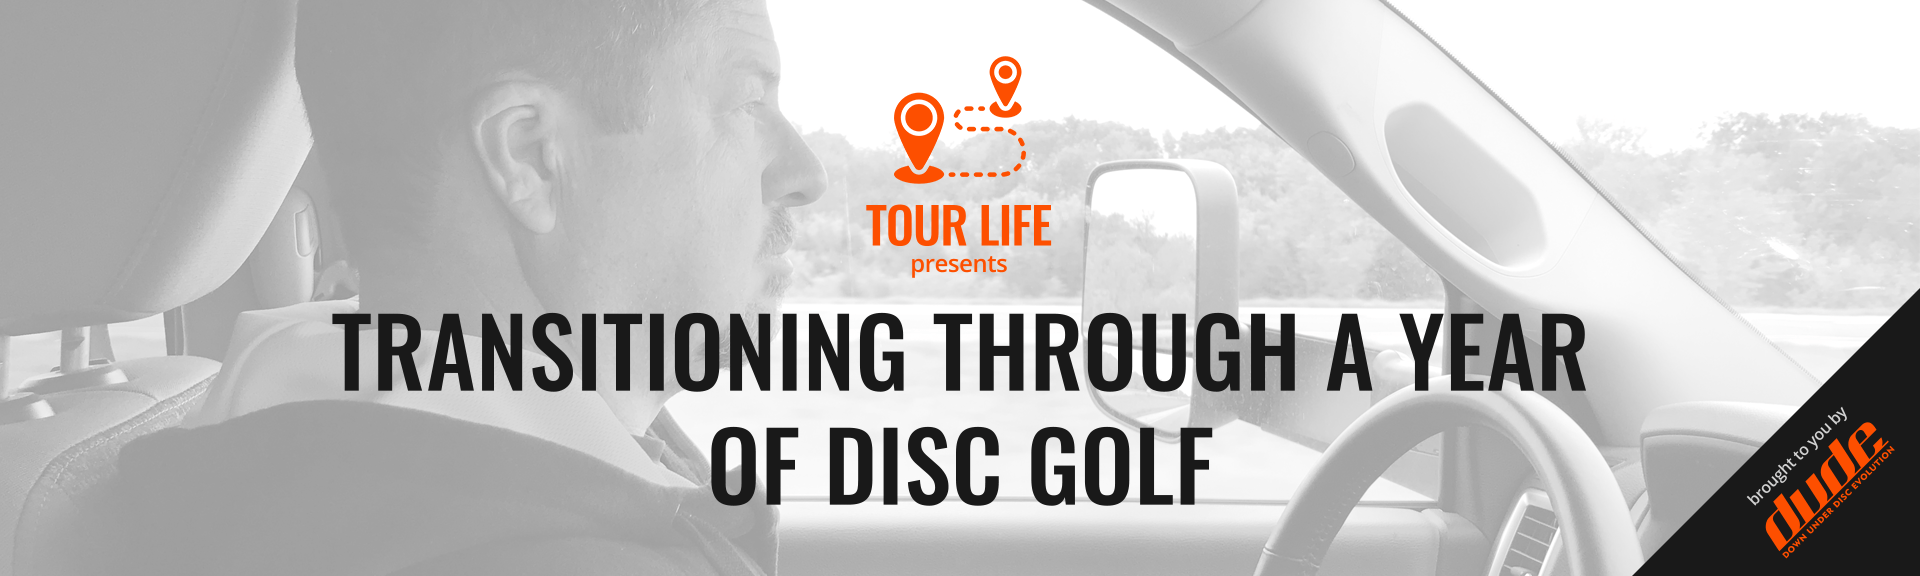 Dude Clothing Tour Life Transitioning Through A Season of Disc Golf